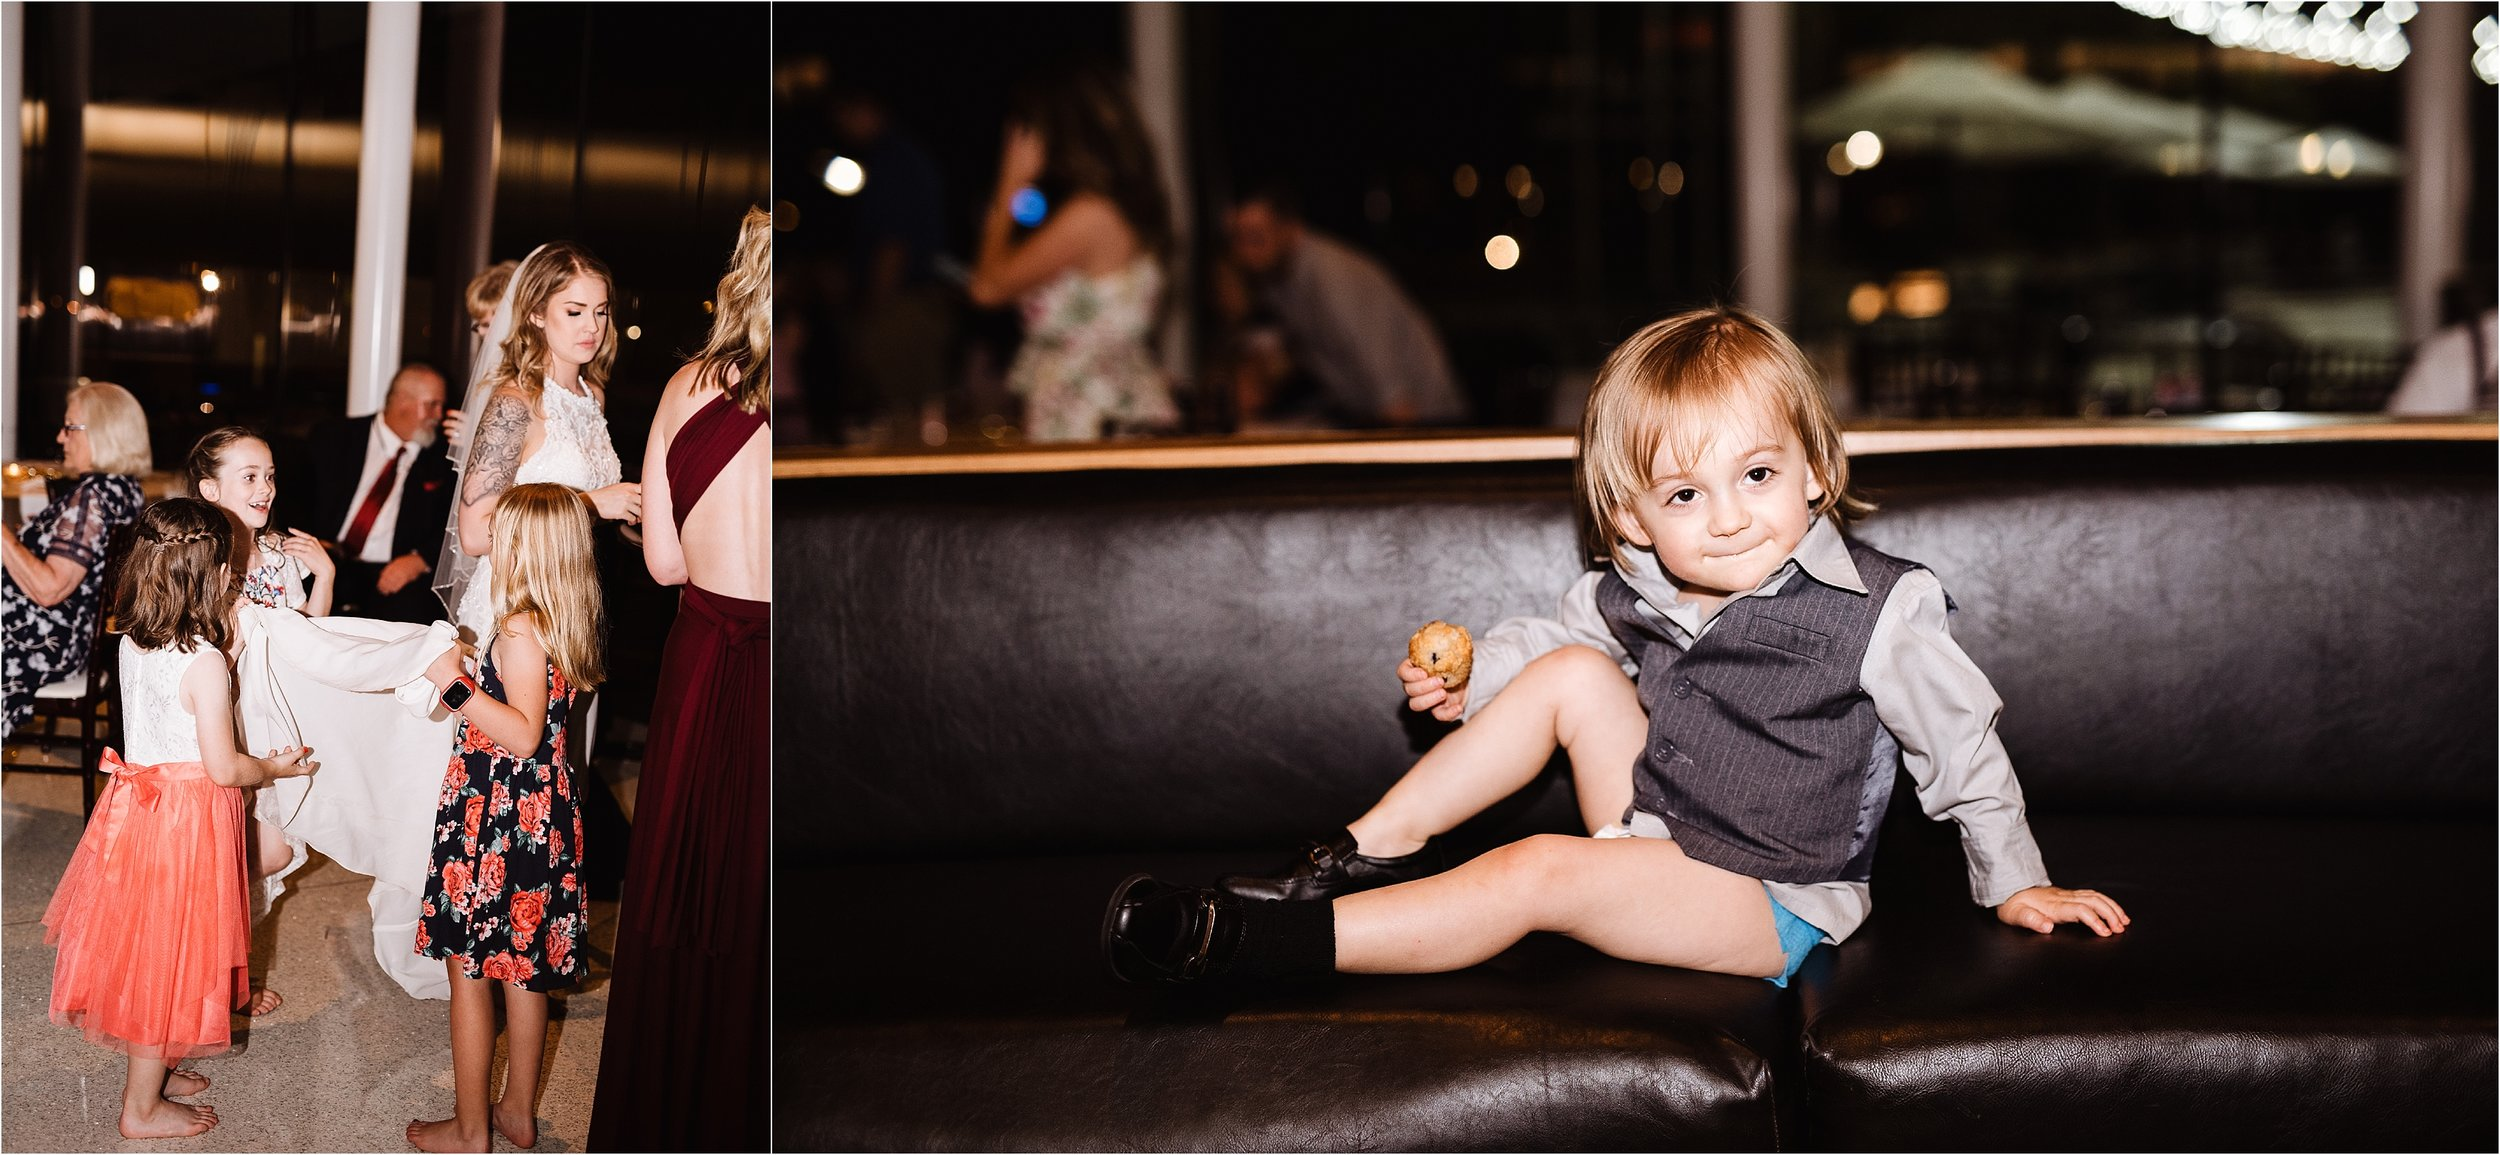 oklahoma wedding photographer reception family friends hugs congratulations best wishes toasts baby kid dancing fun